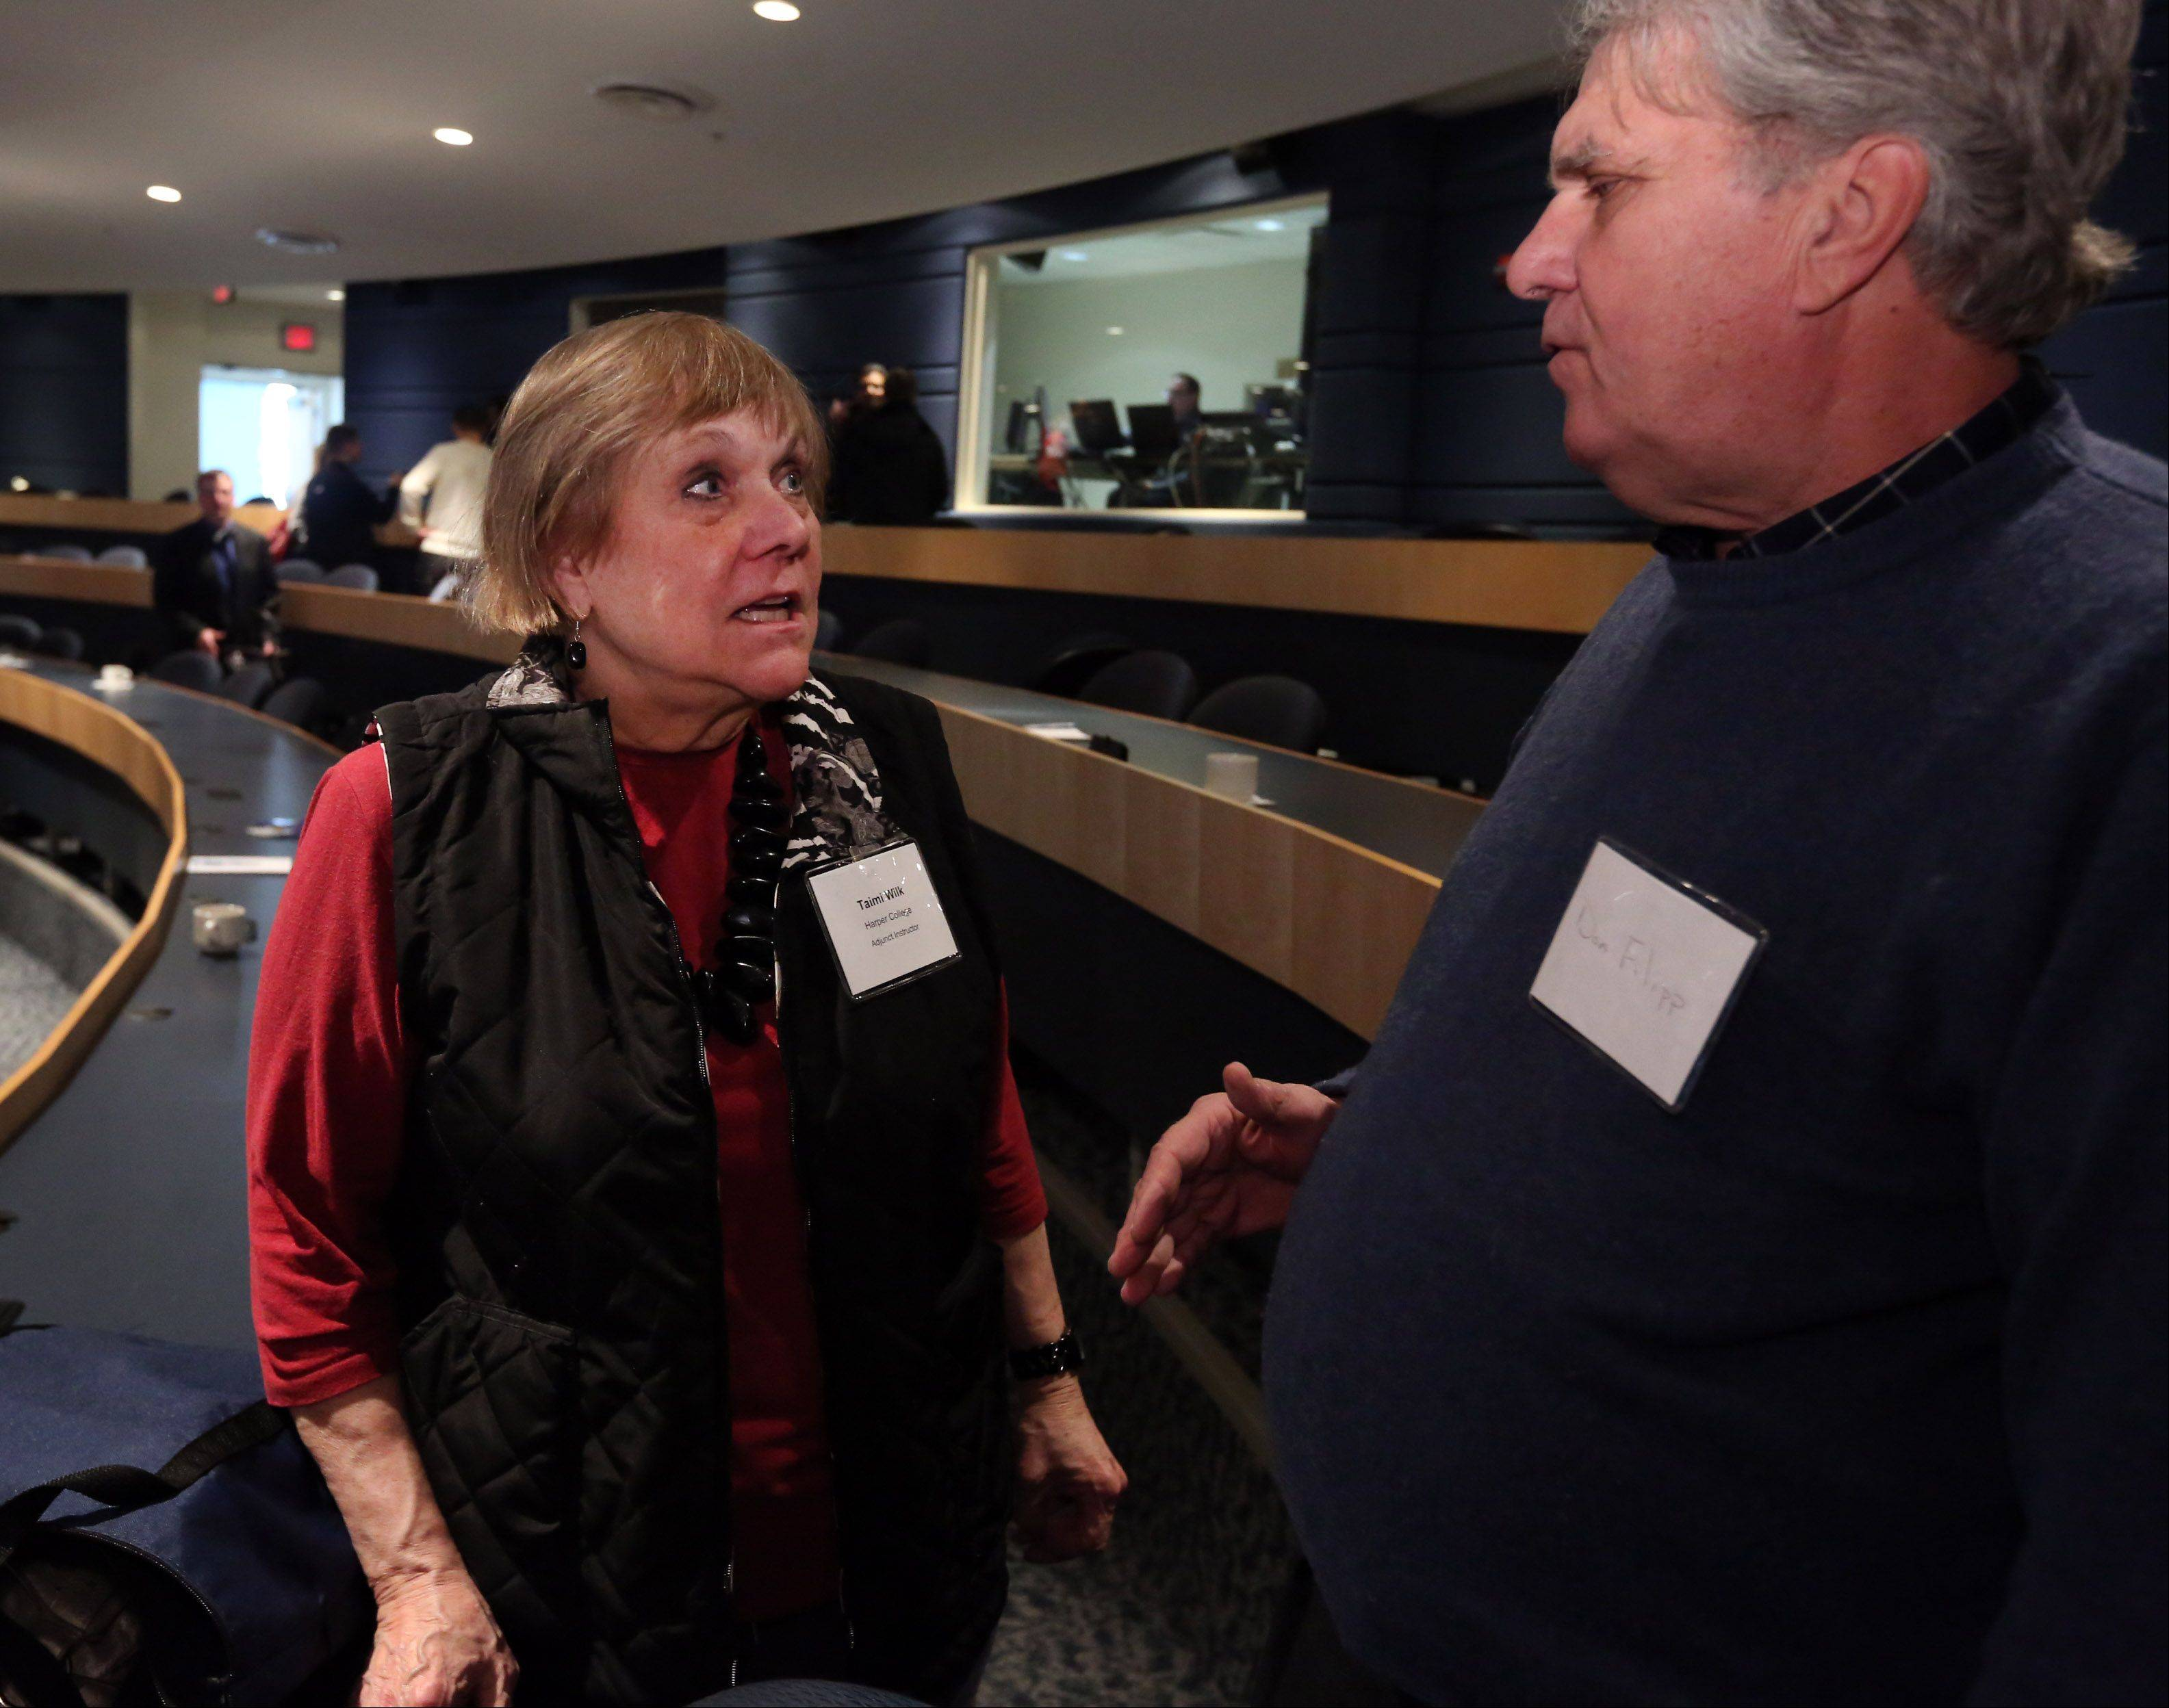 Taimi Wilk, Harper College adjunct instructor, left, talks with Don Filipp of Barrington, after an economic outlook breakfast at the Wojcik Conference Center at Harper College on Thursday in Palatine.